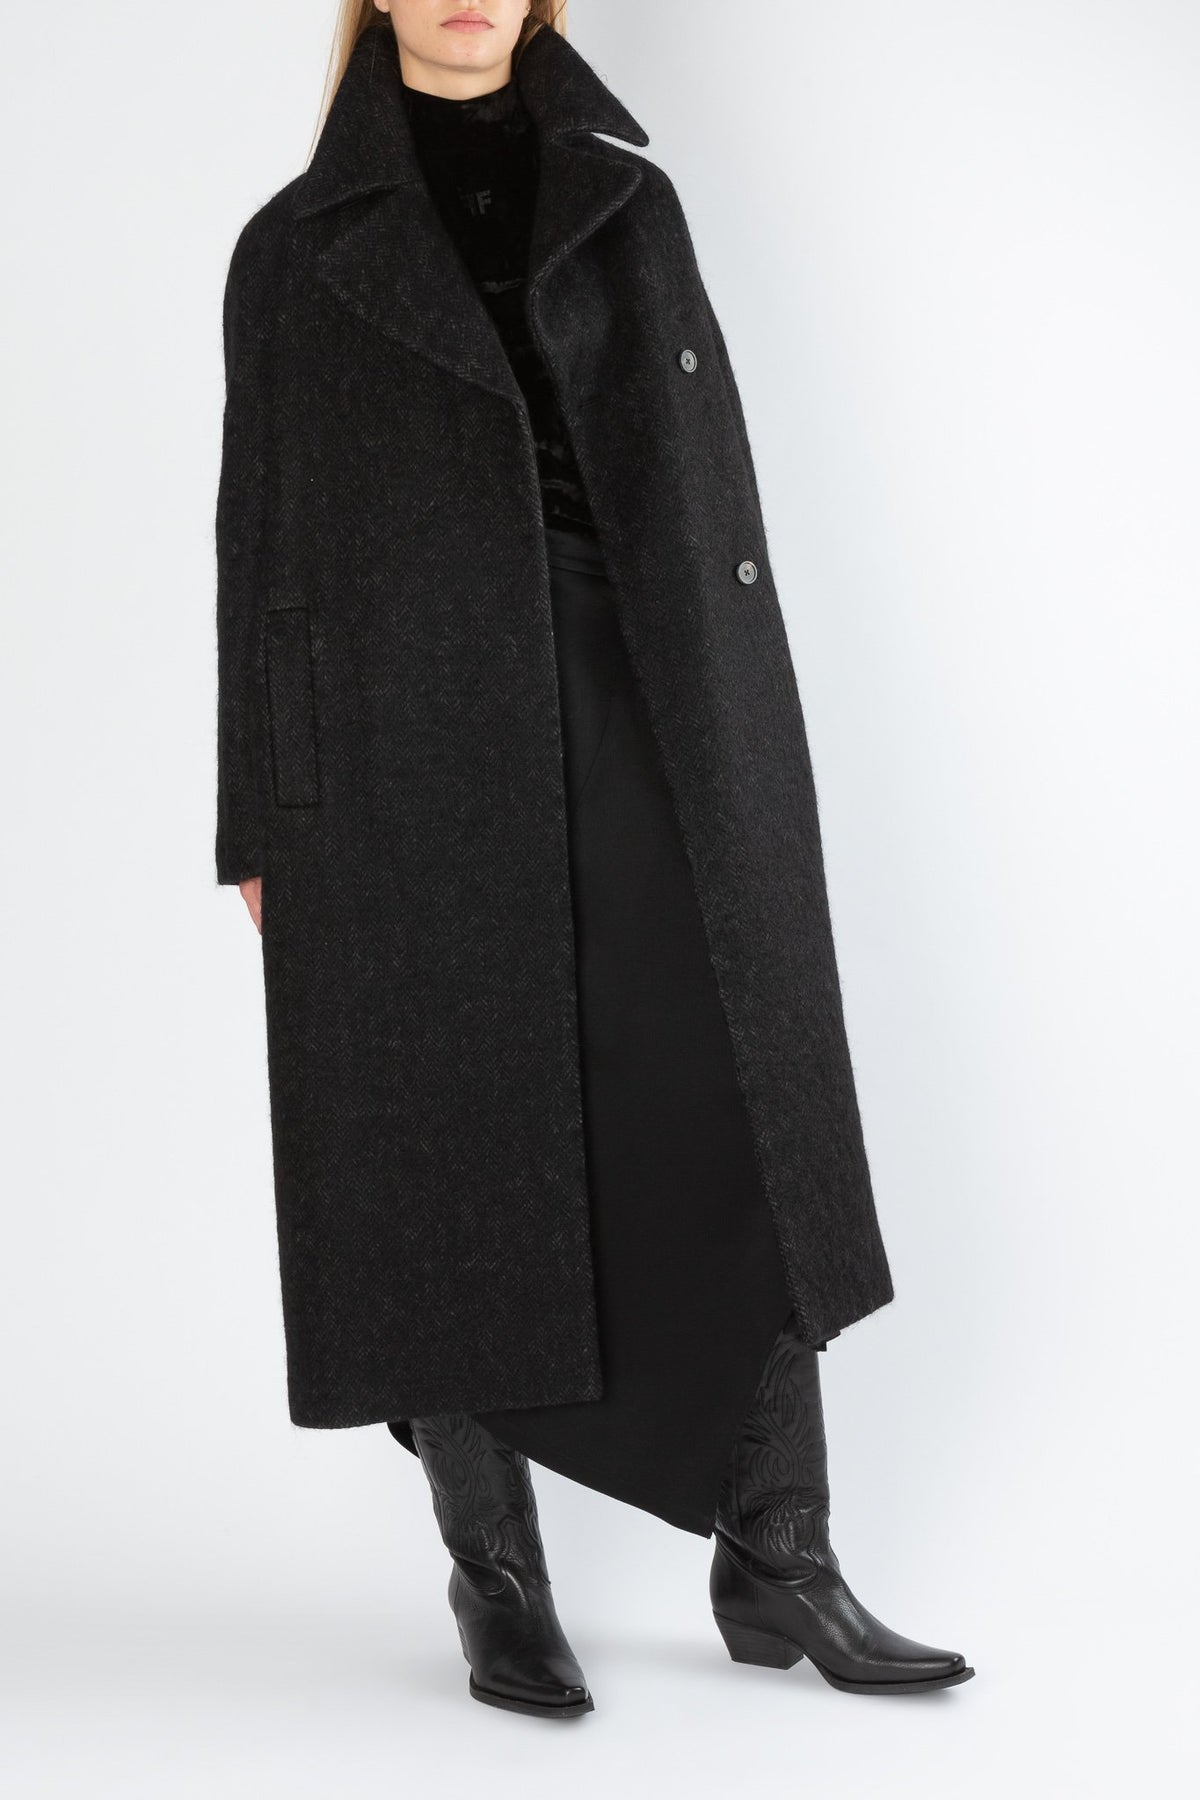 Wanted | Coat | Black